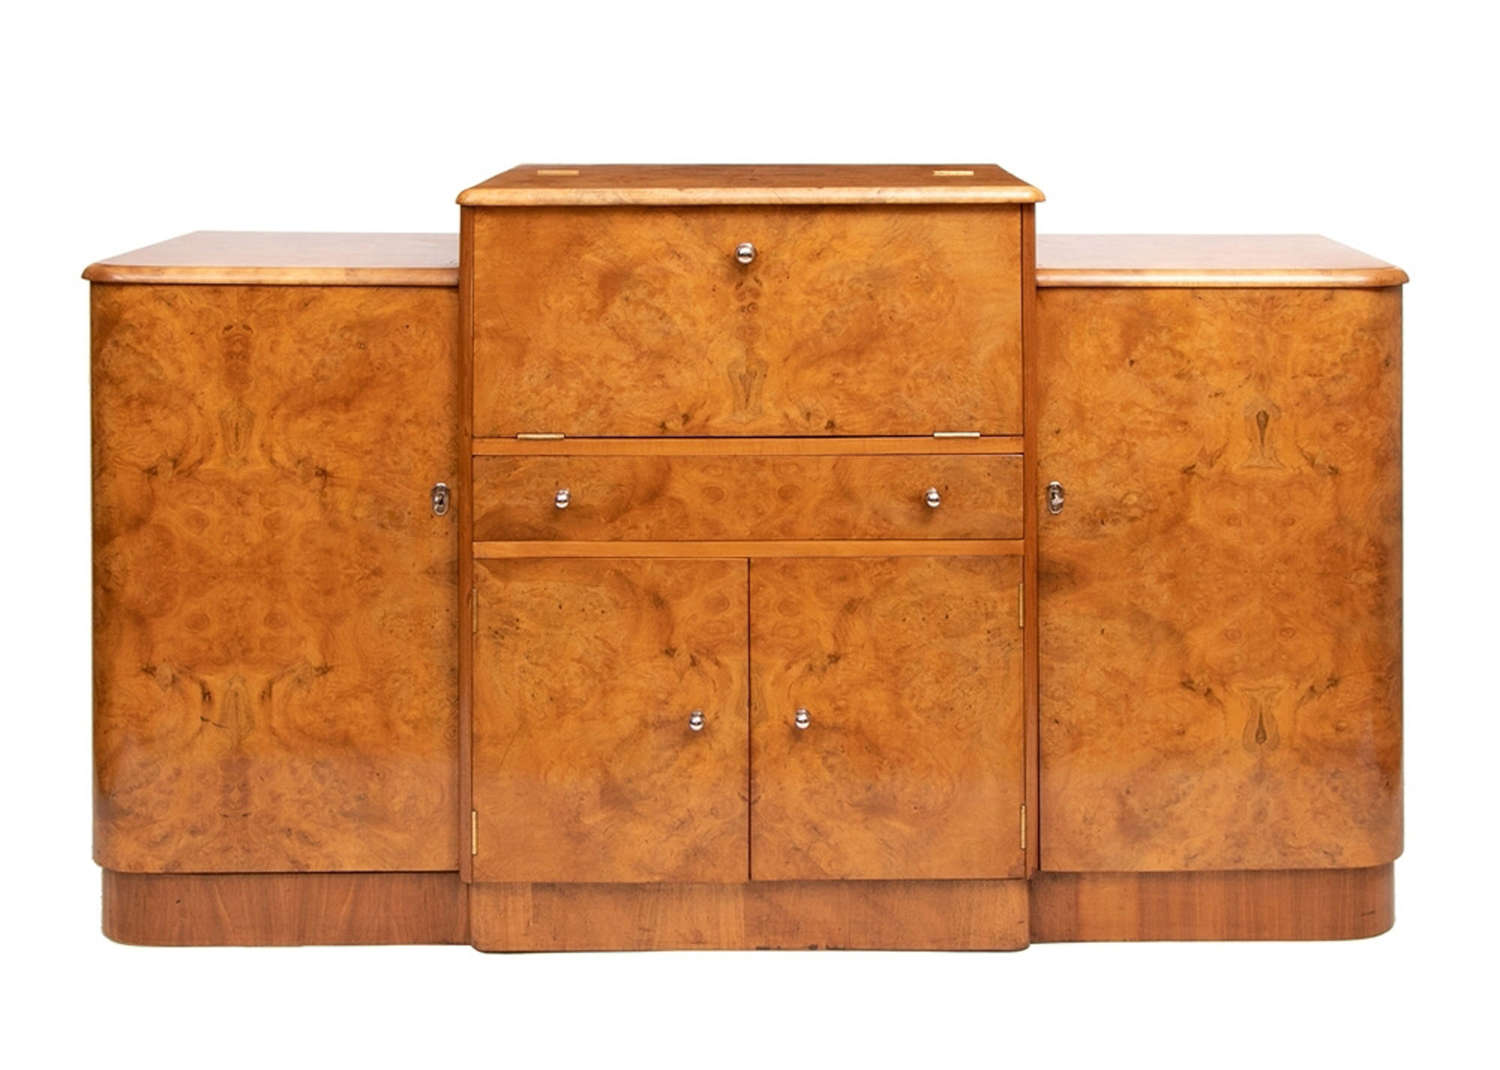 British Art Deco Walnut Cocktail Cabinet c.1930